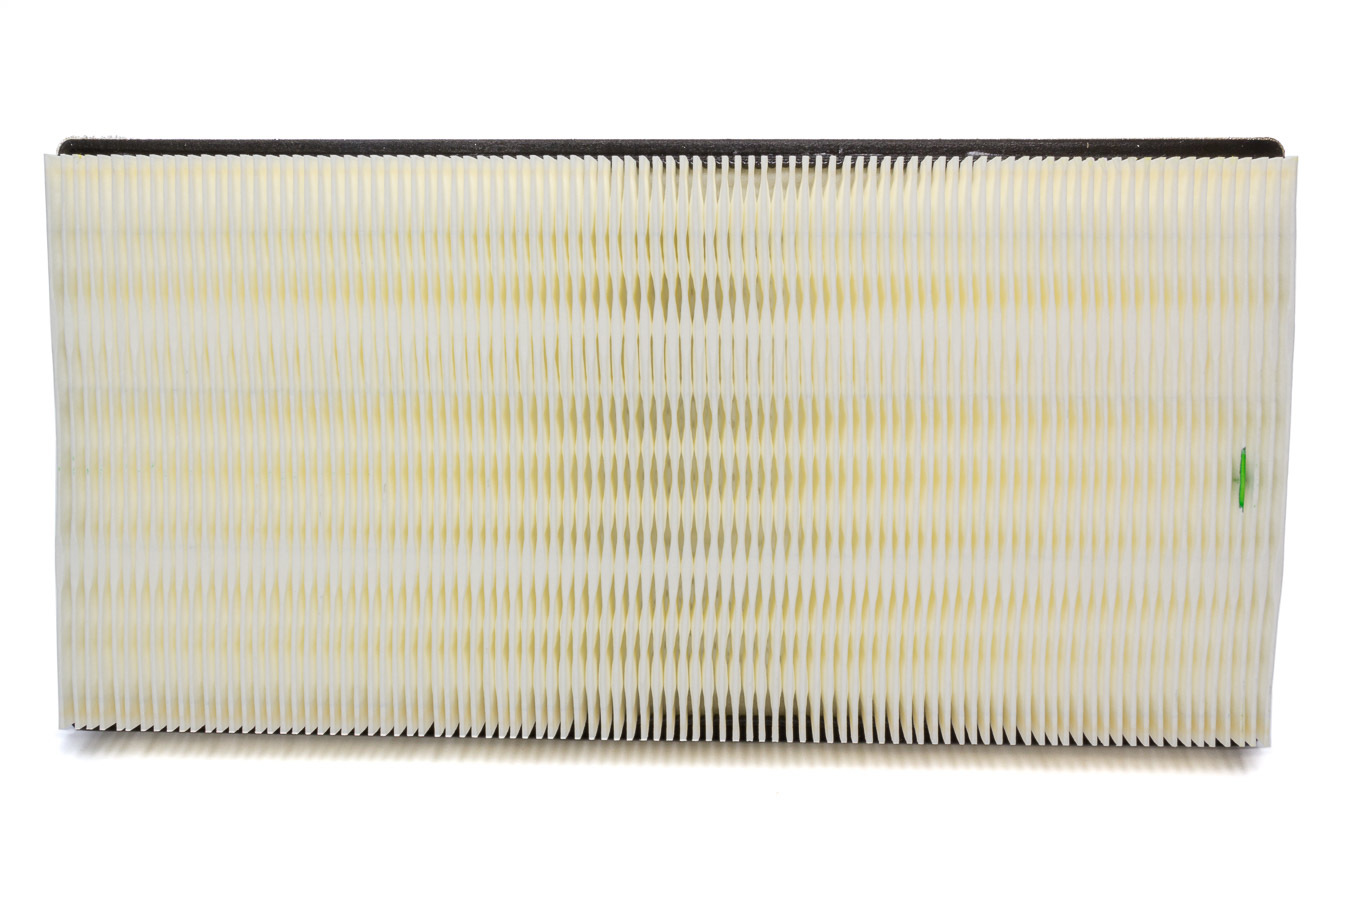 CHEVROLET PERFORMANCE Air Filter Element